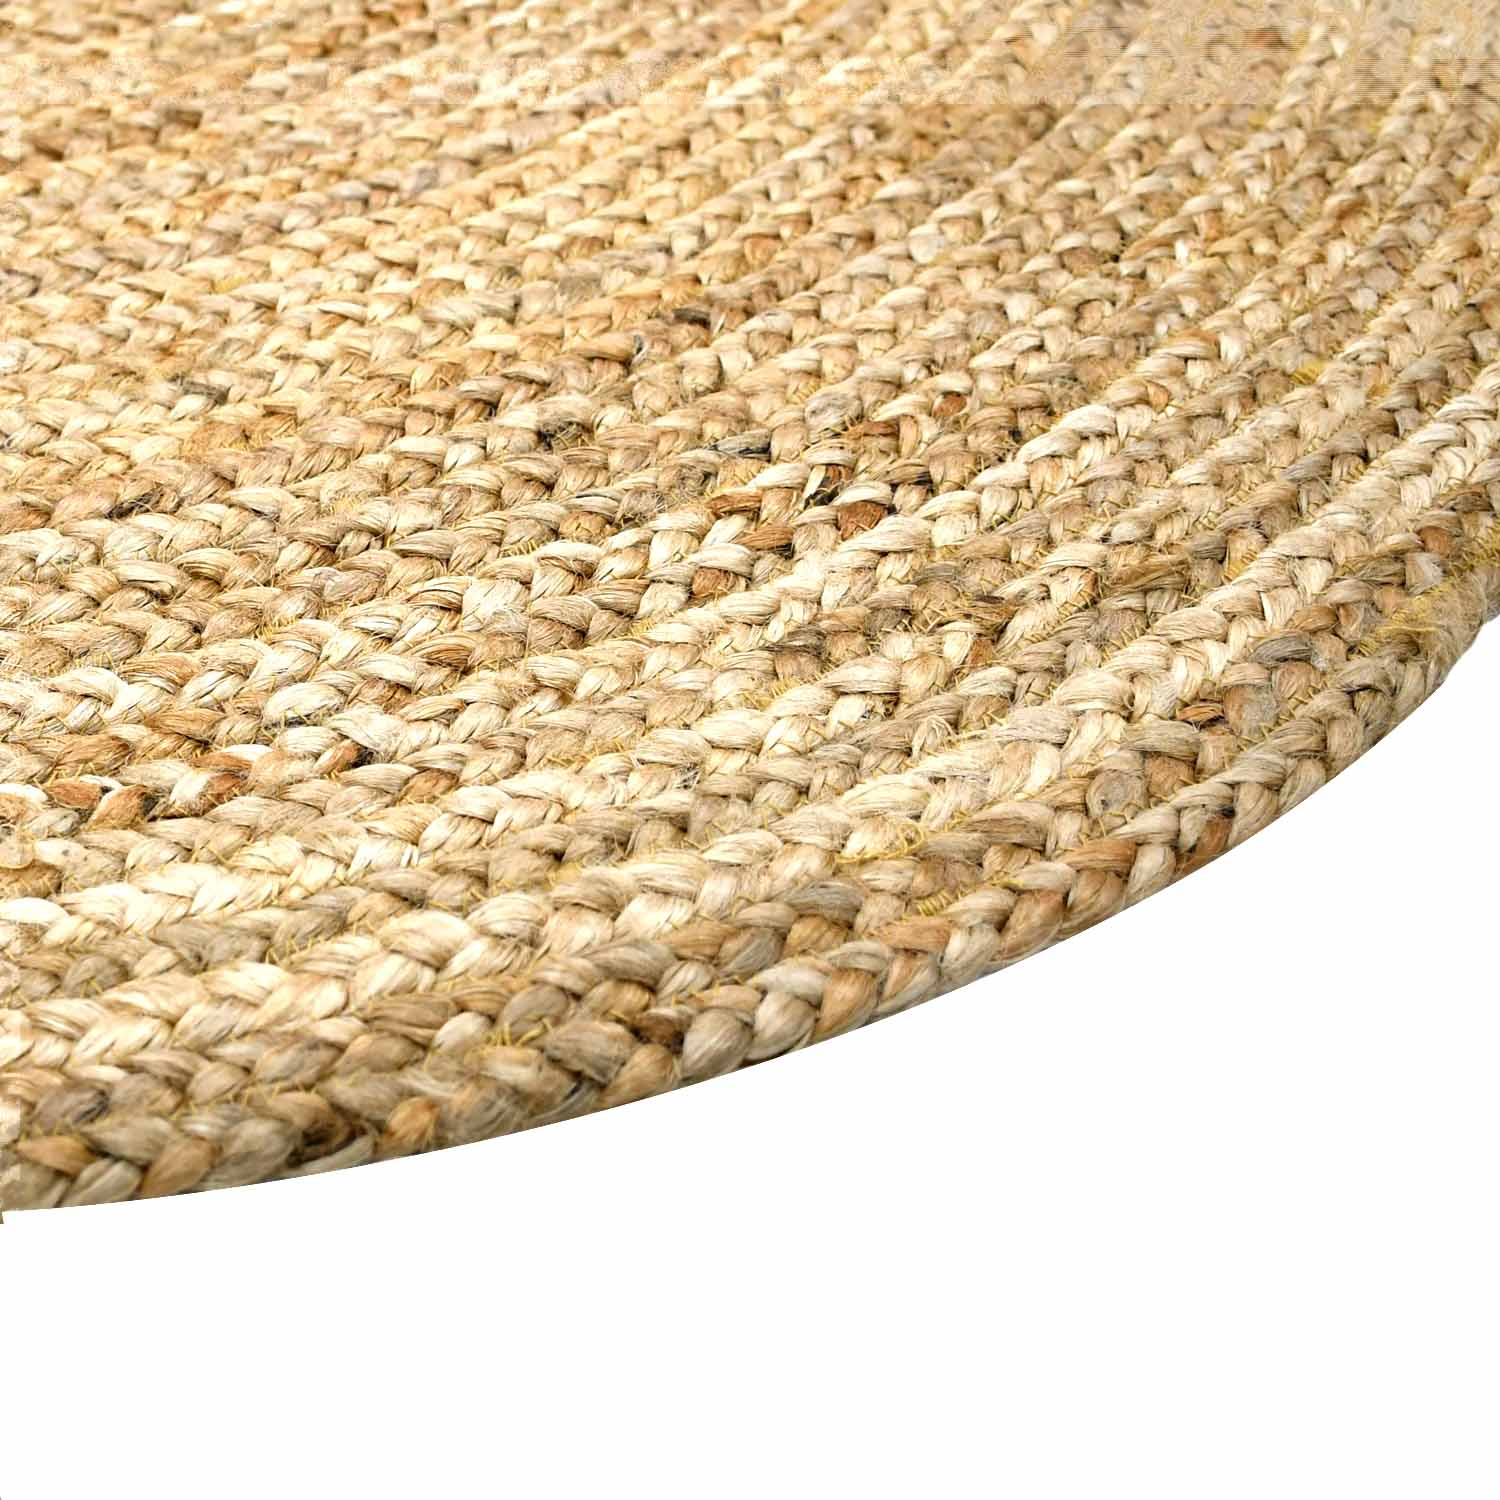 Pacific Handwoven Round Natural Jute Rug